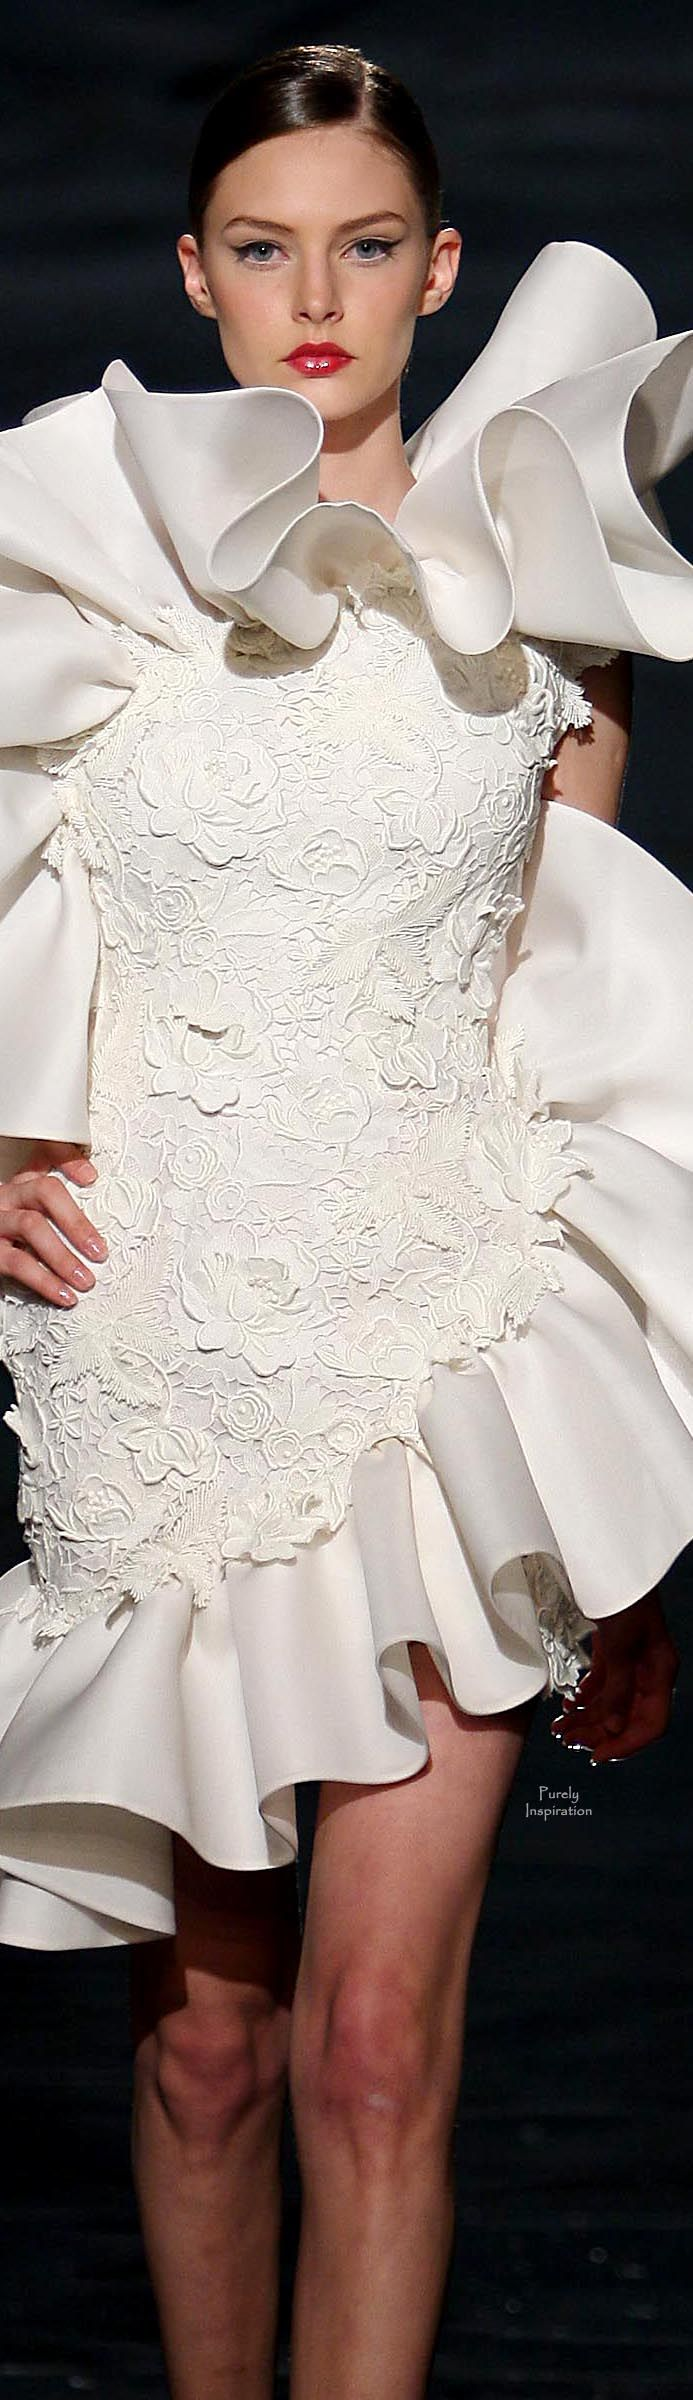 Fausto Sarli, Haute Couture FW2009 explosion from within